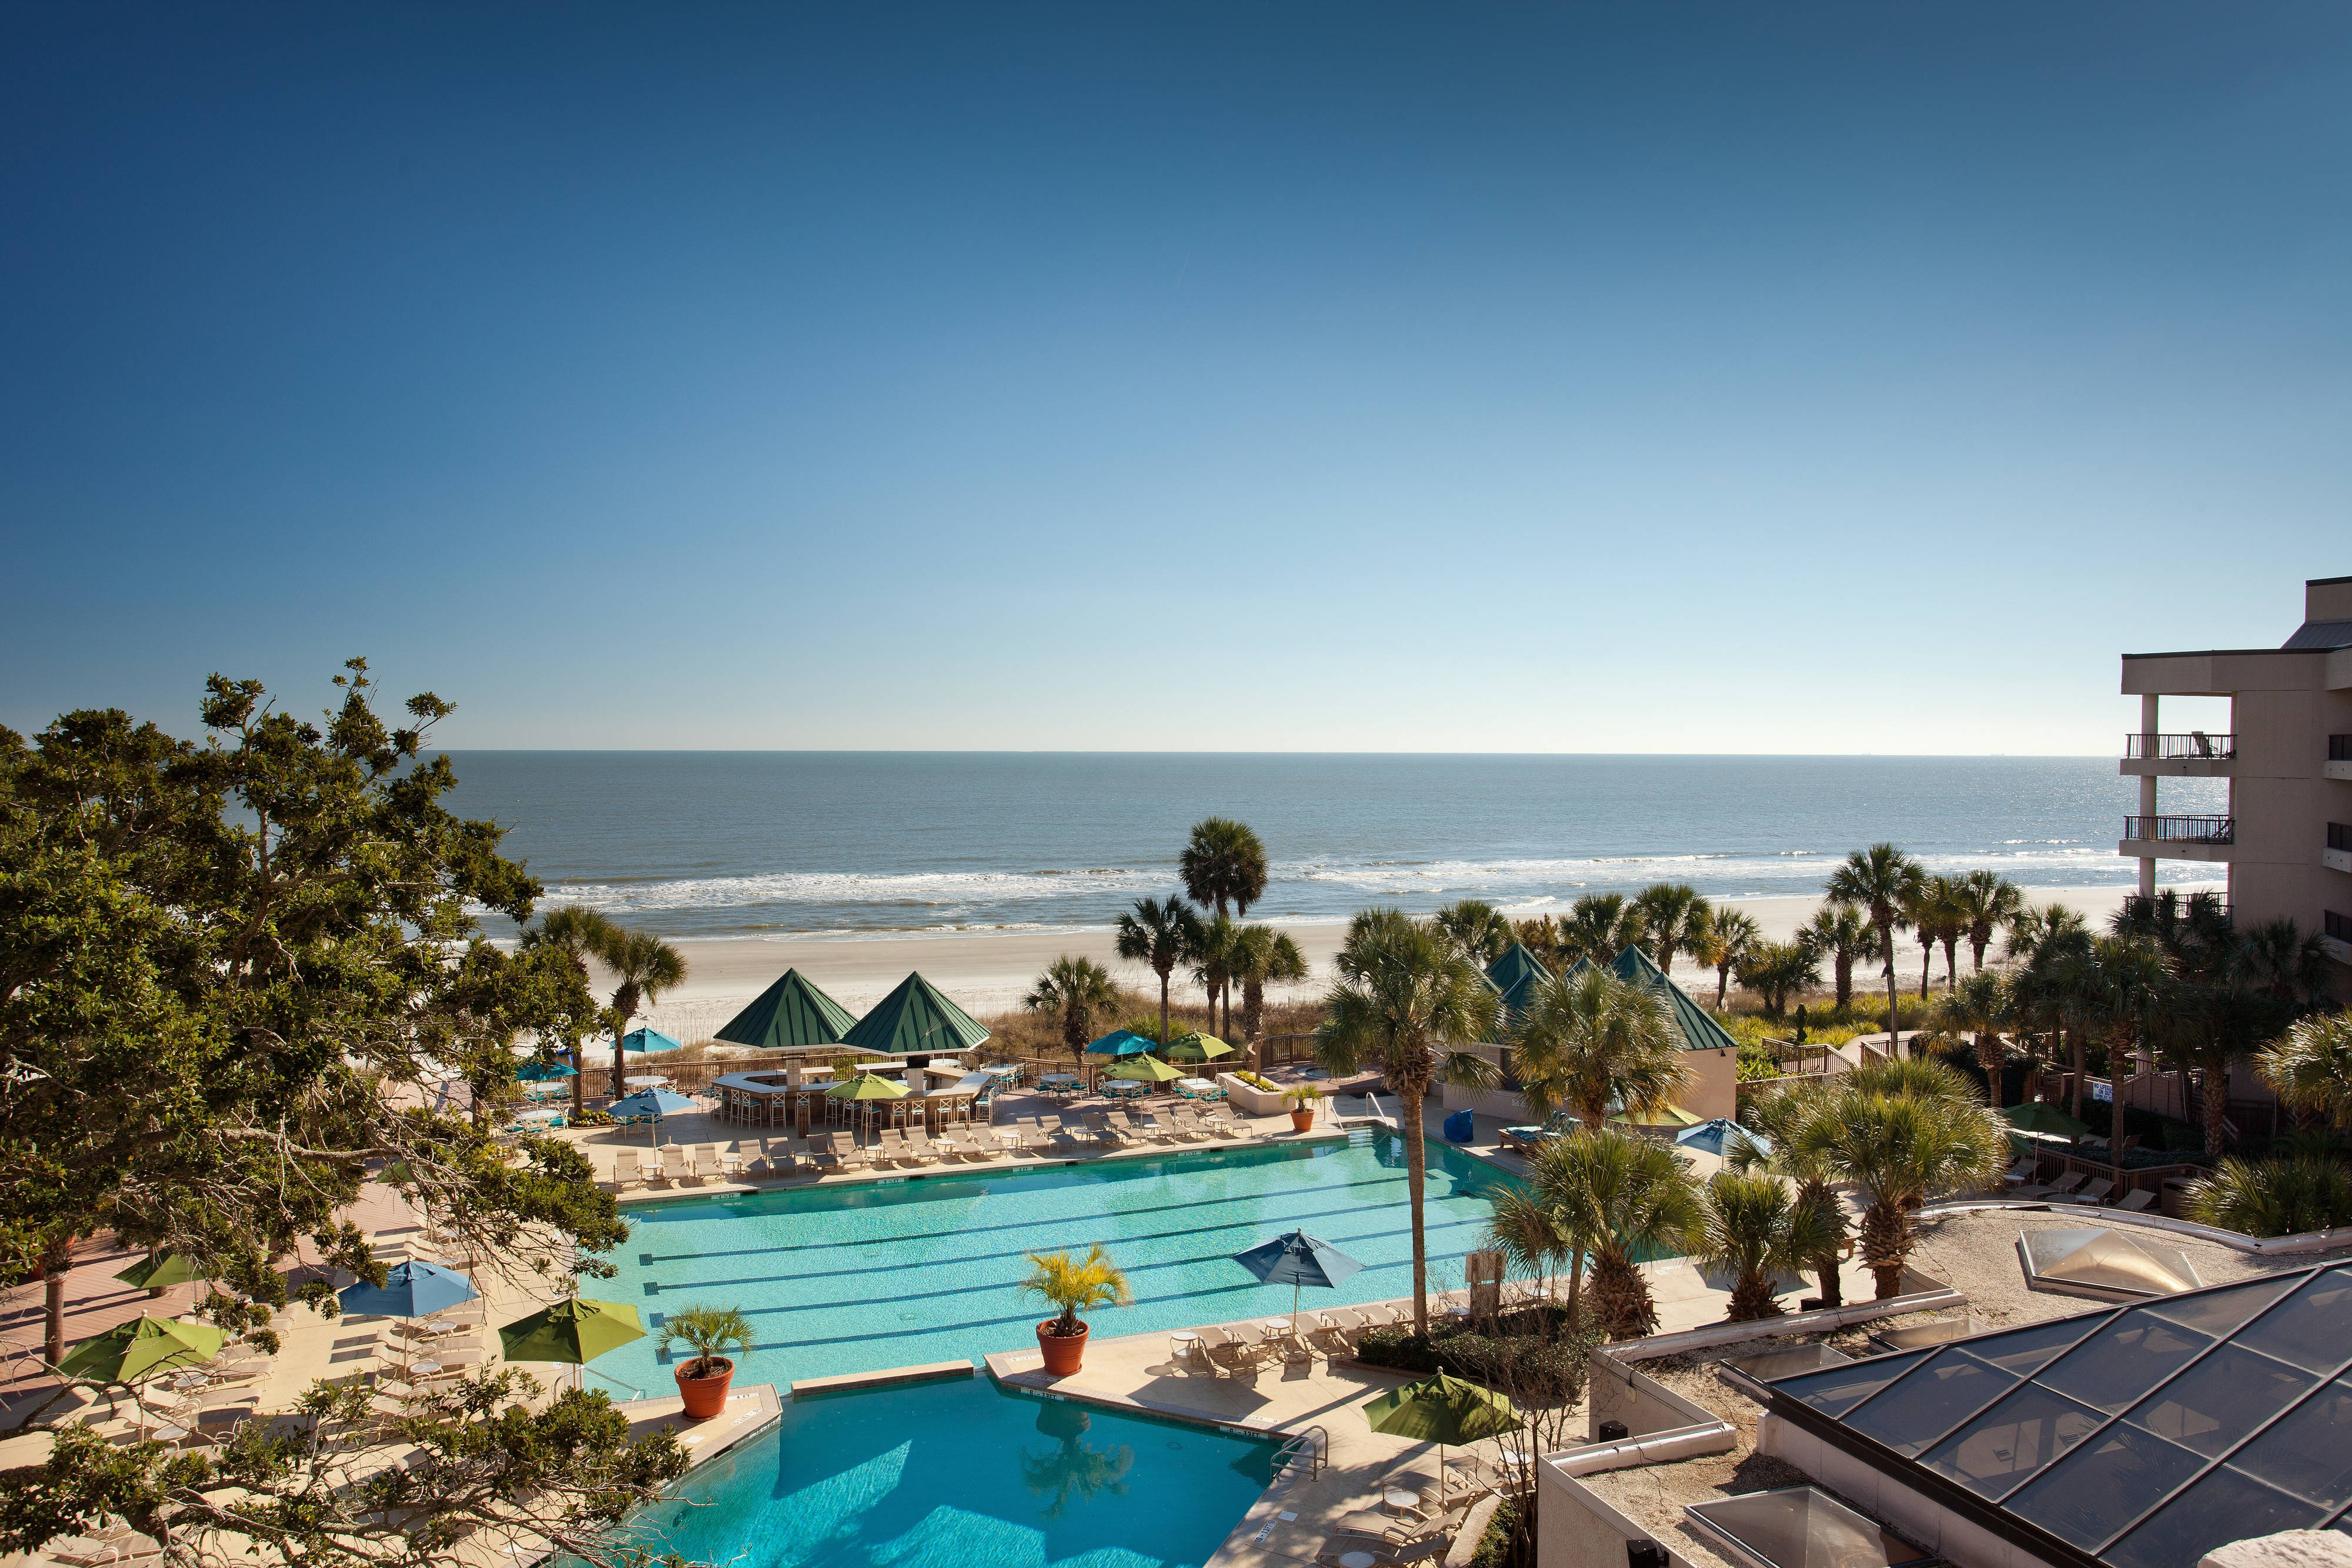 Hilton Head Island Beachfront Hotels